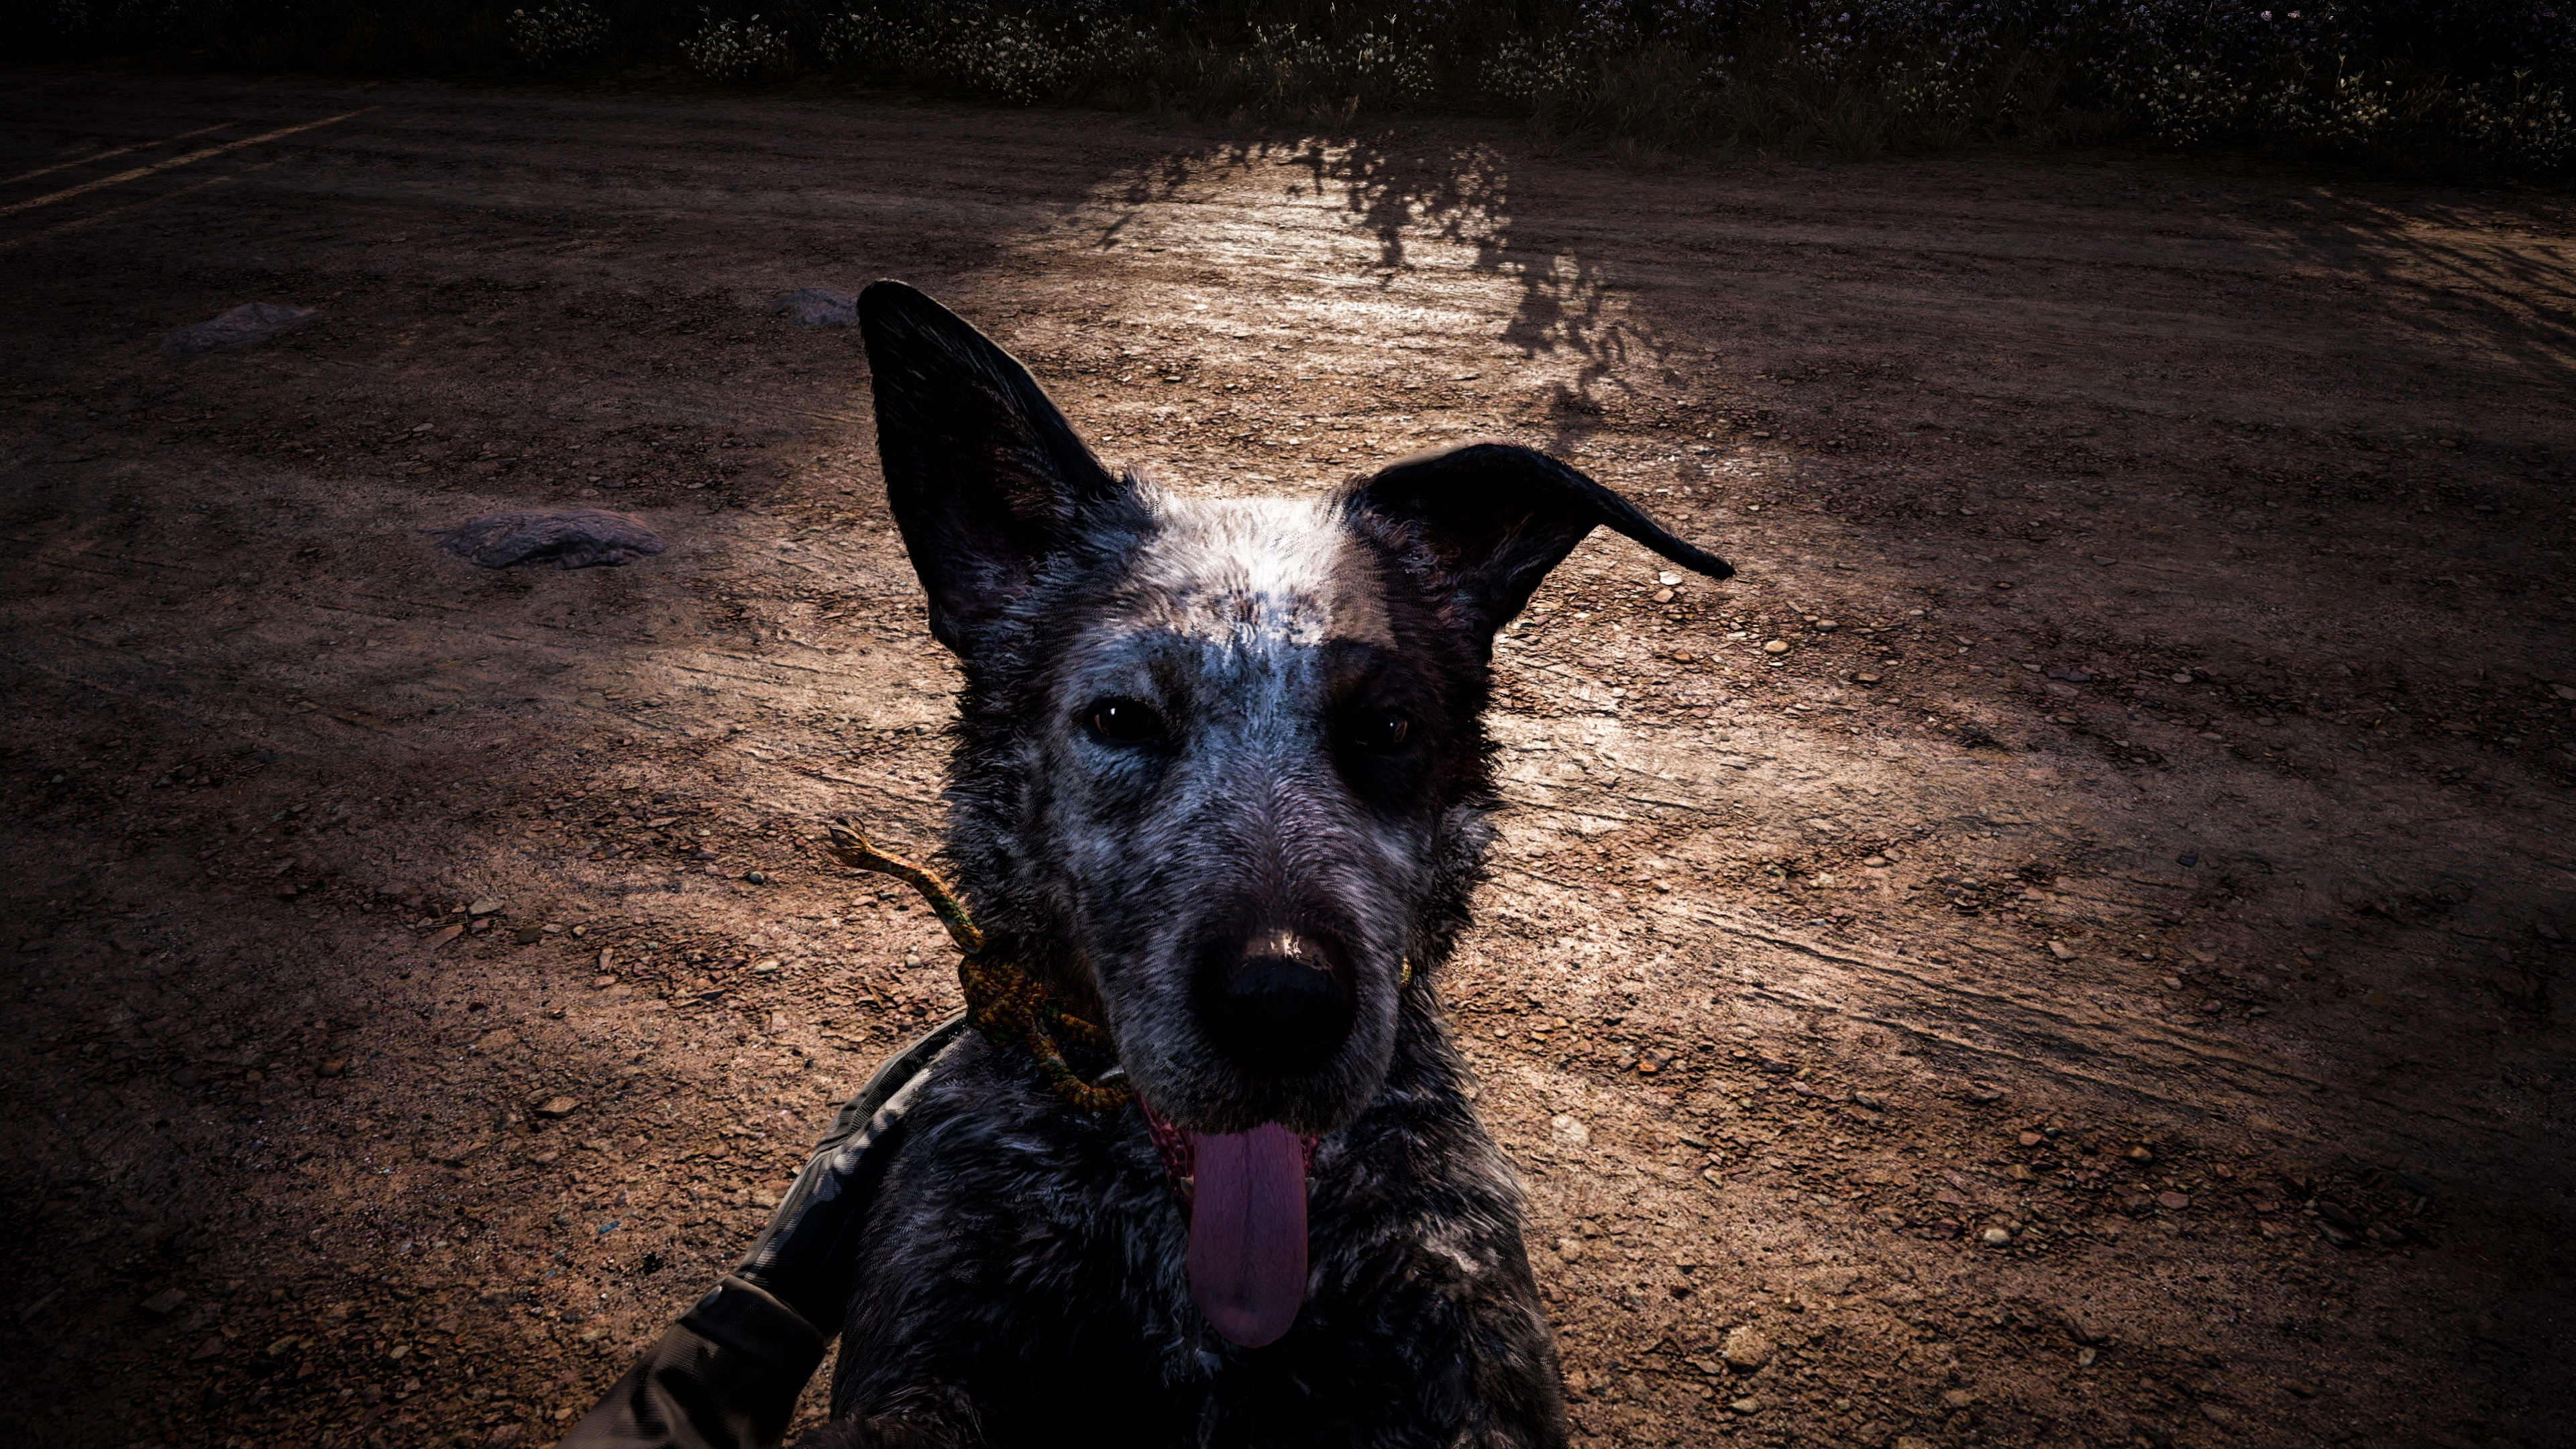 Download 3840x2400 Wallpaper Dog Muzzle Far Cry 5 Video Game 4k Ultra Hd 16 10 Widescreen 3840x2400 Hd Image Background 5945